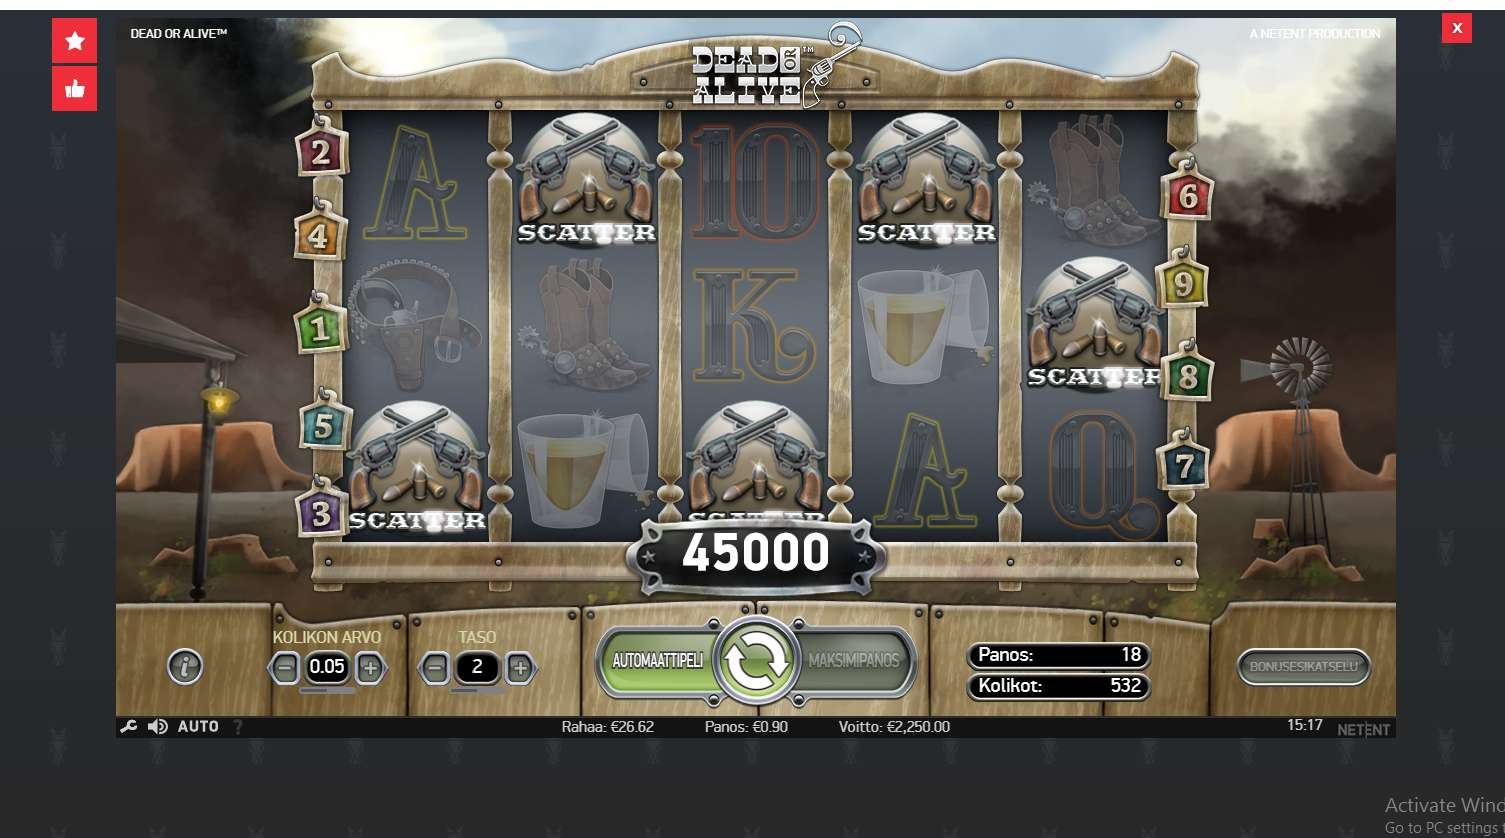 Dead or alive slot big win picture